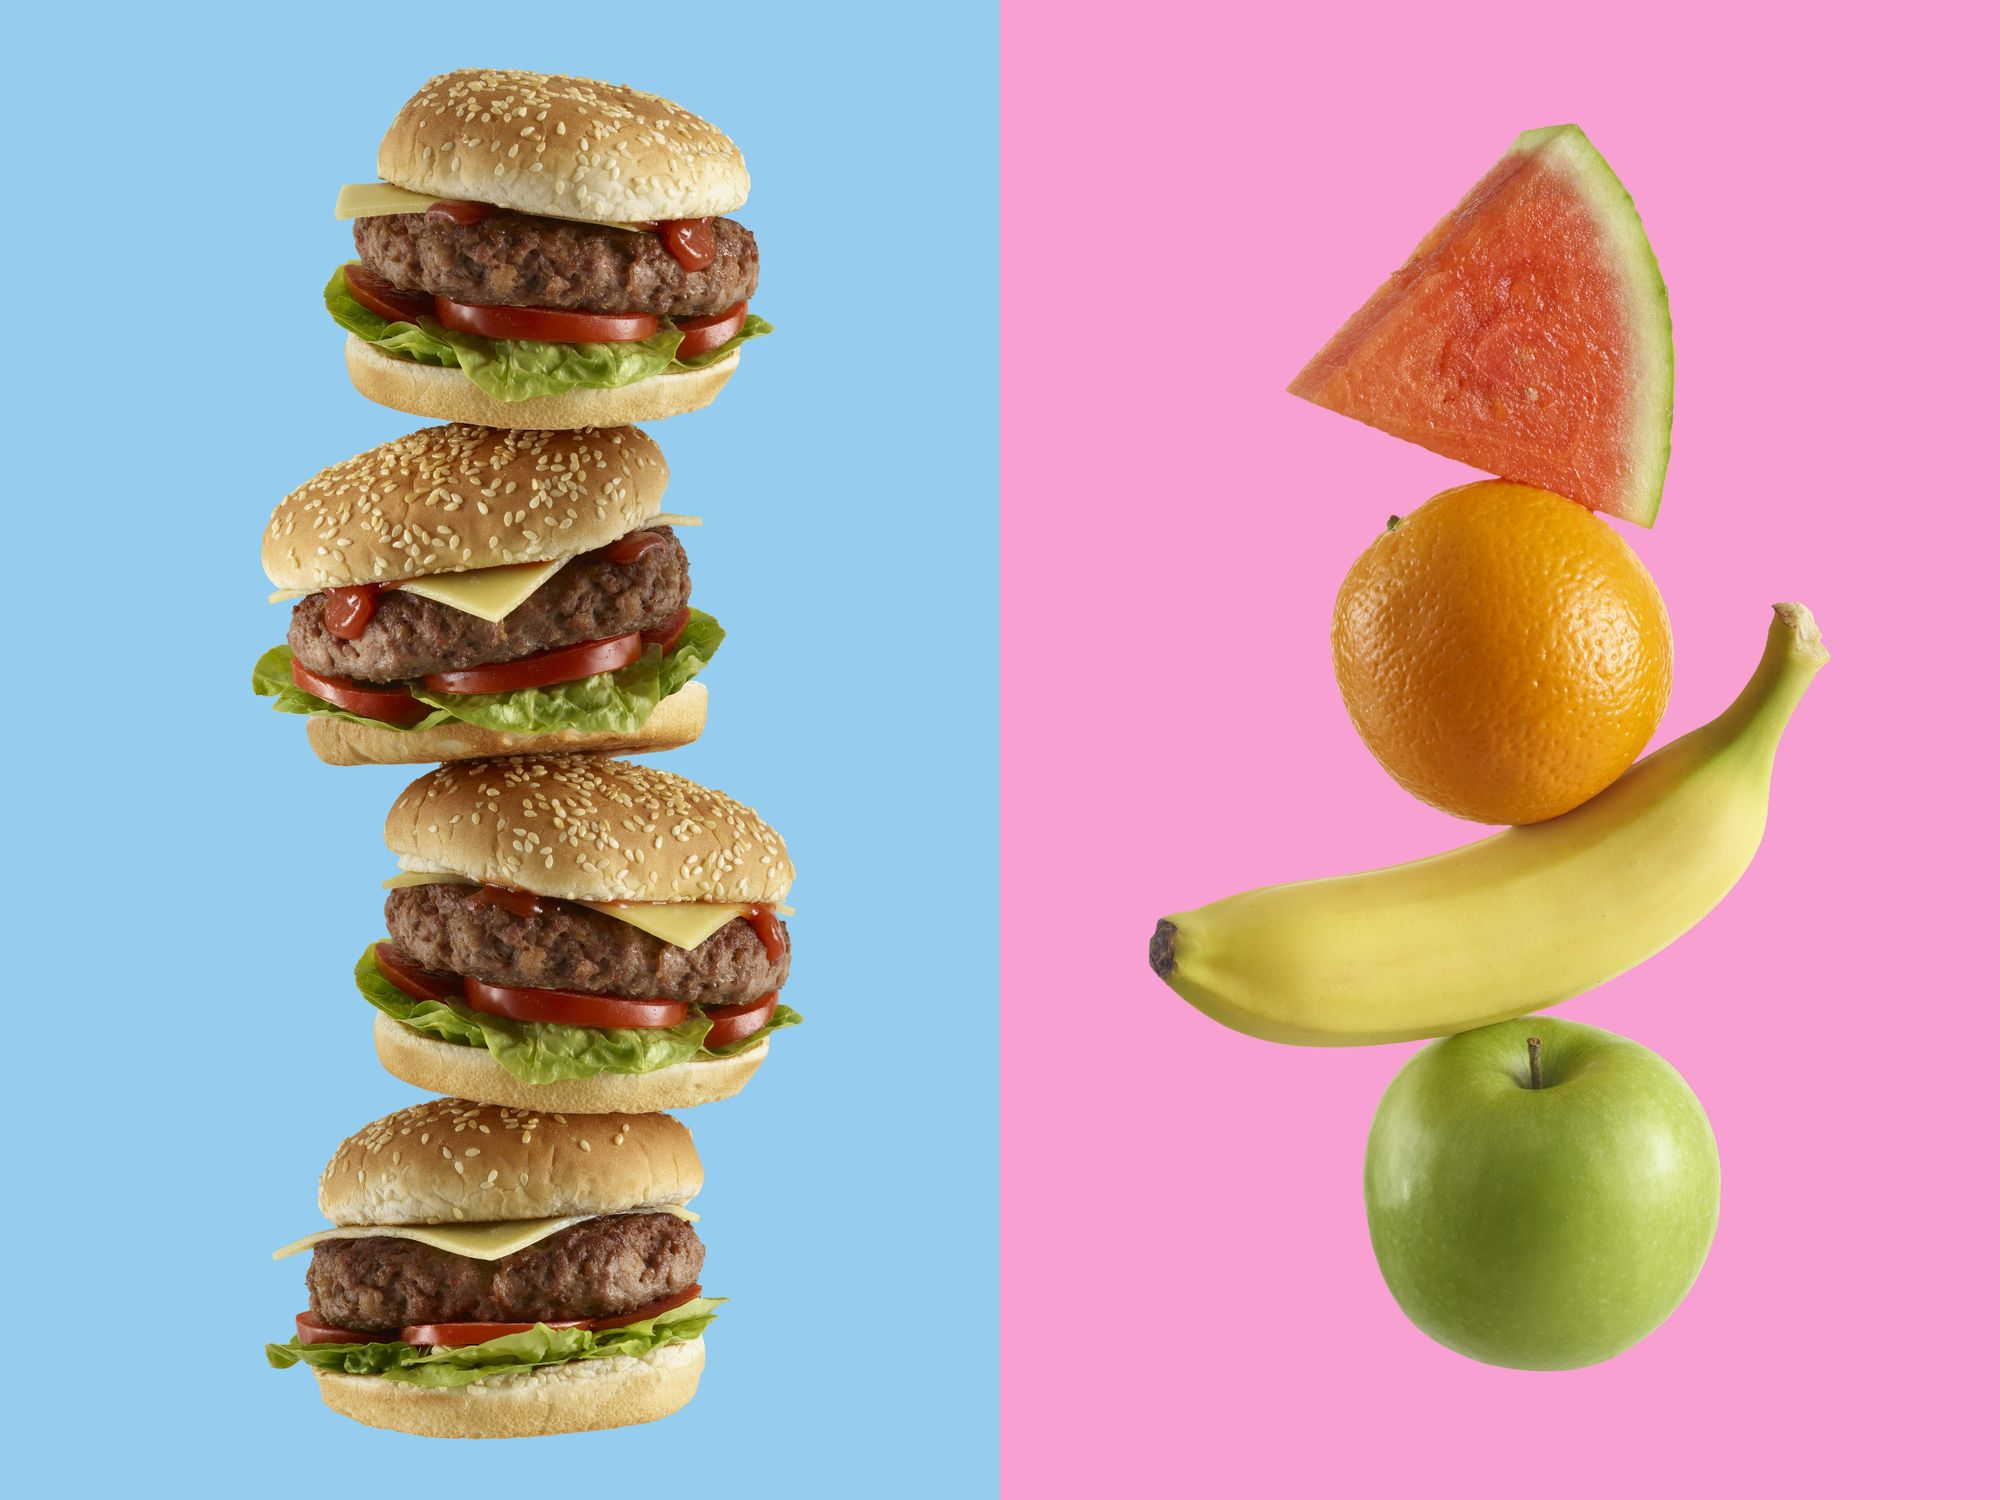 15 food swaps that will make your diet instantly healthier